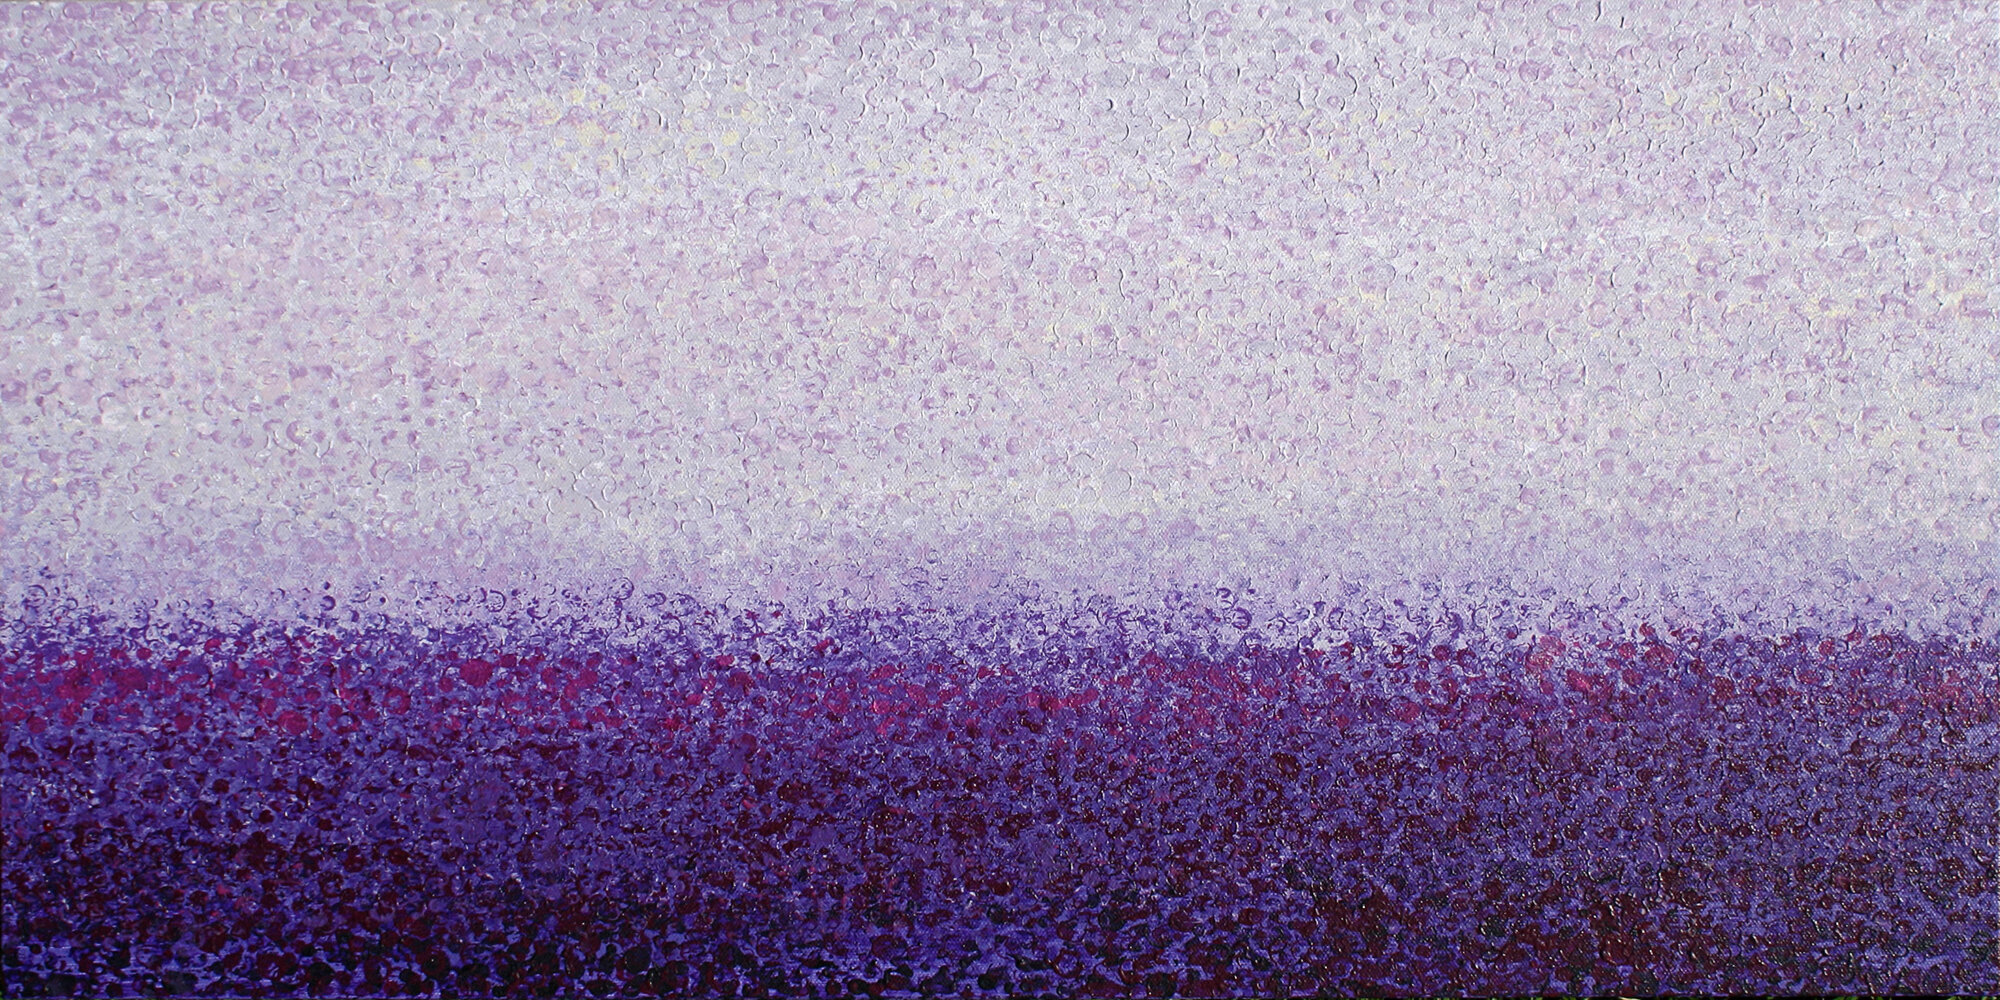 PurpleAbstracted.jpg